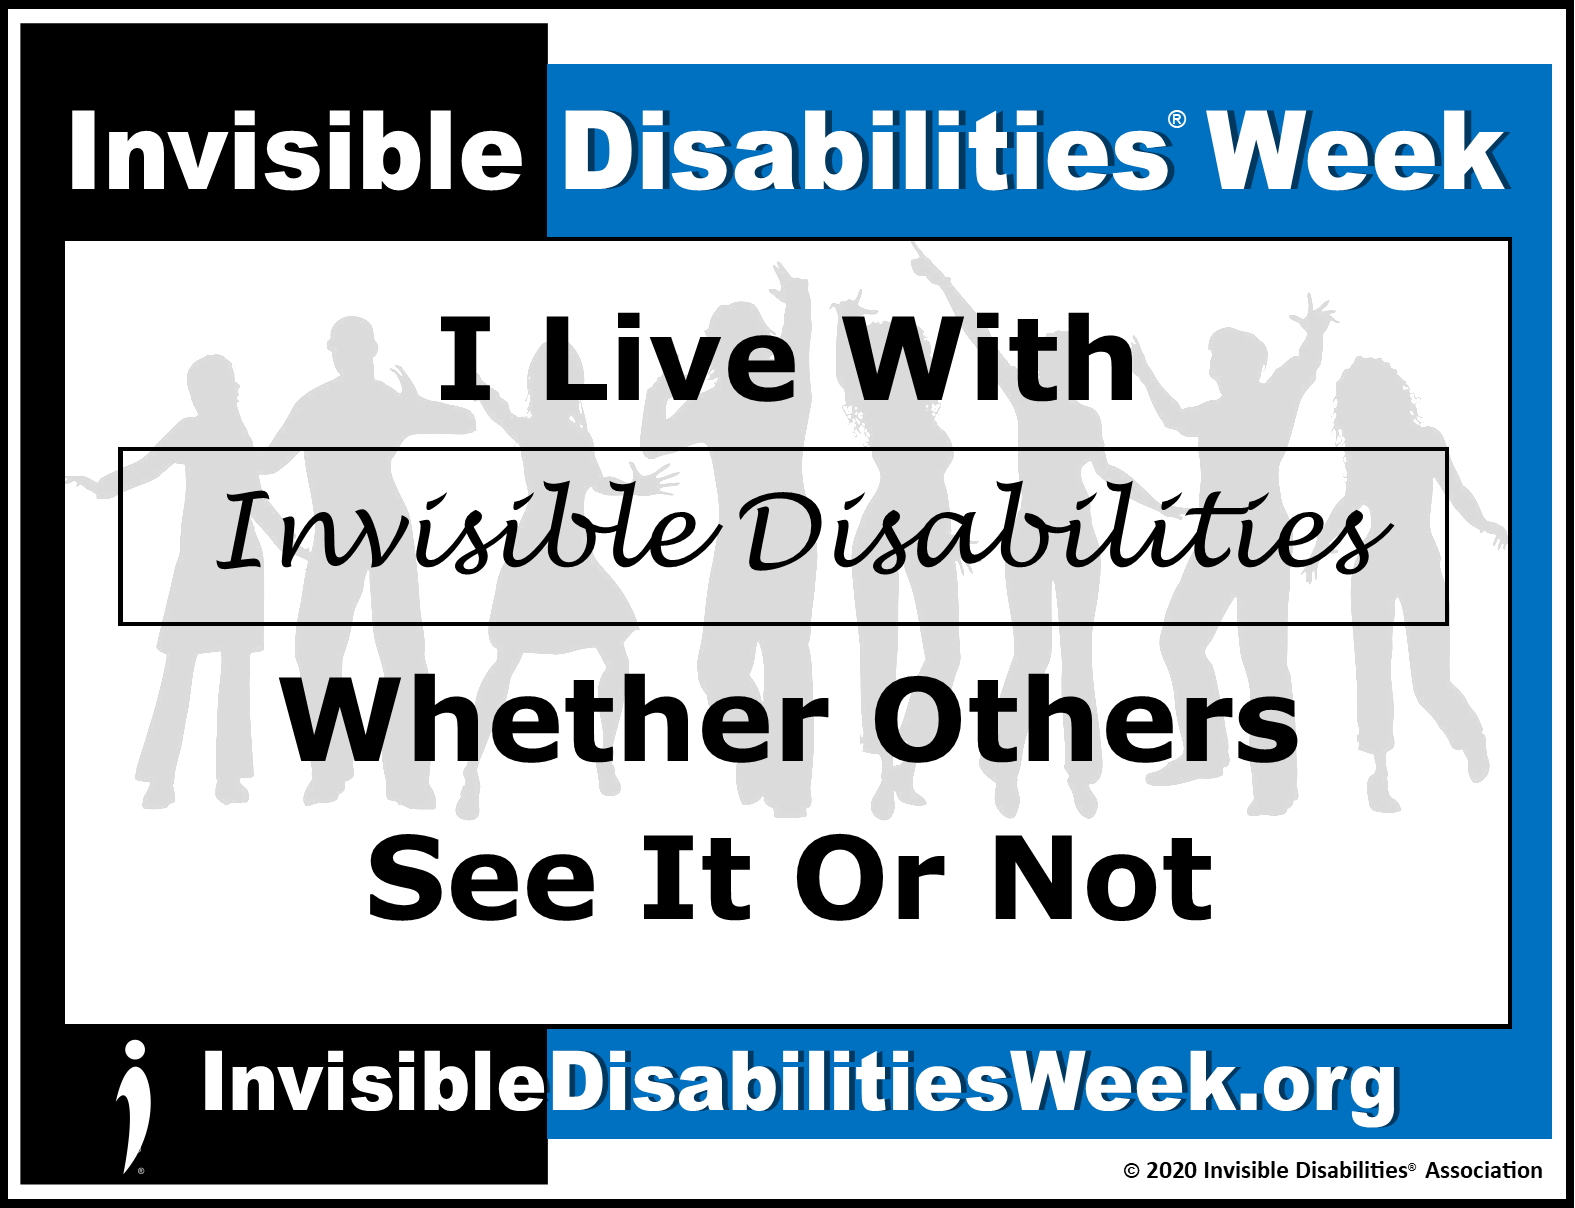 2020 Invisible Disabilities Week Banner ID See or Not - Invisible Disabilities Association